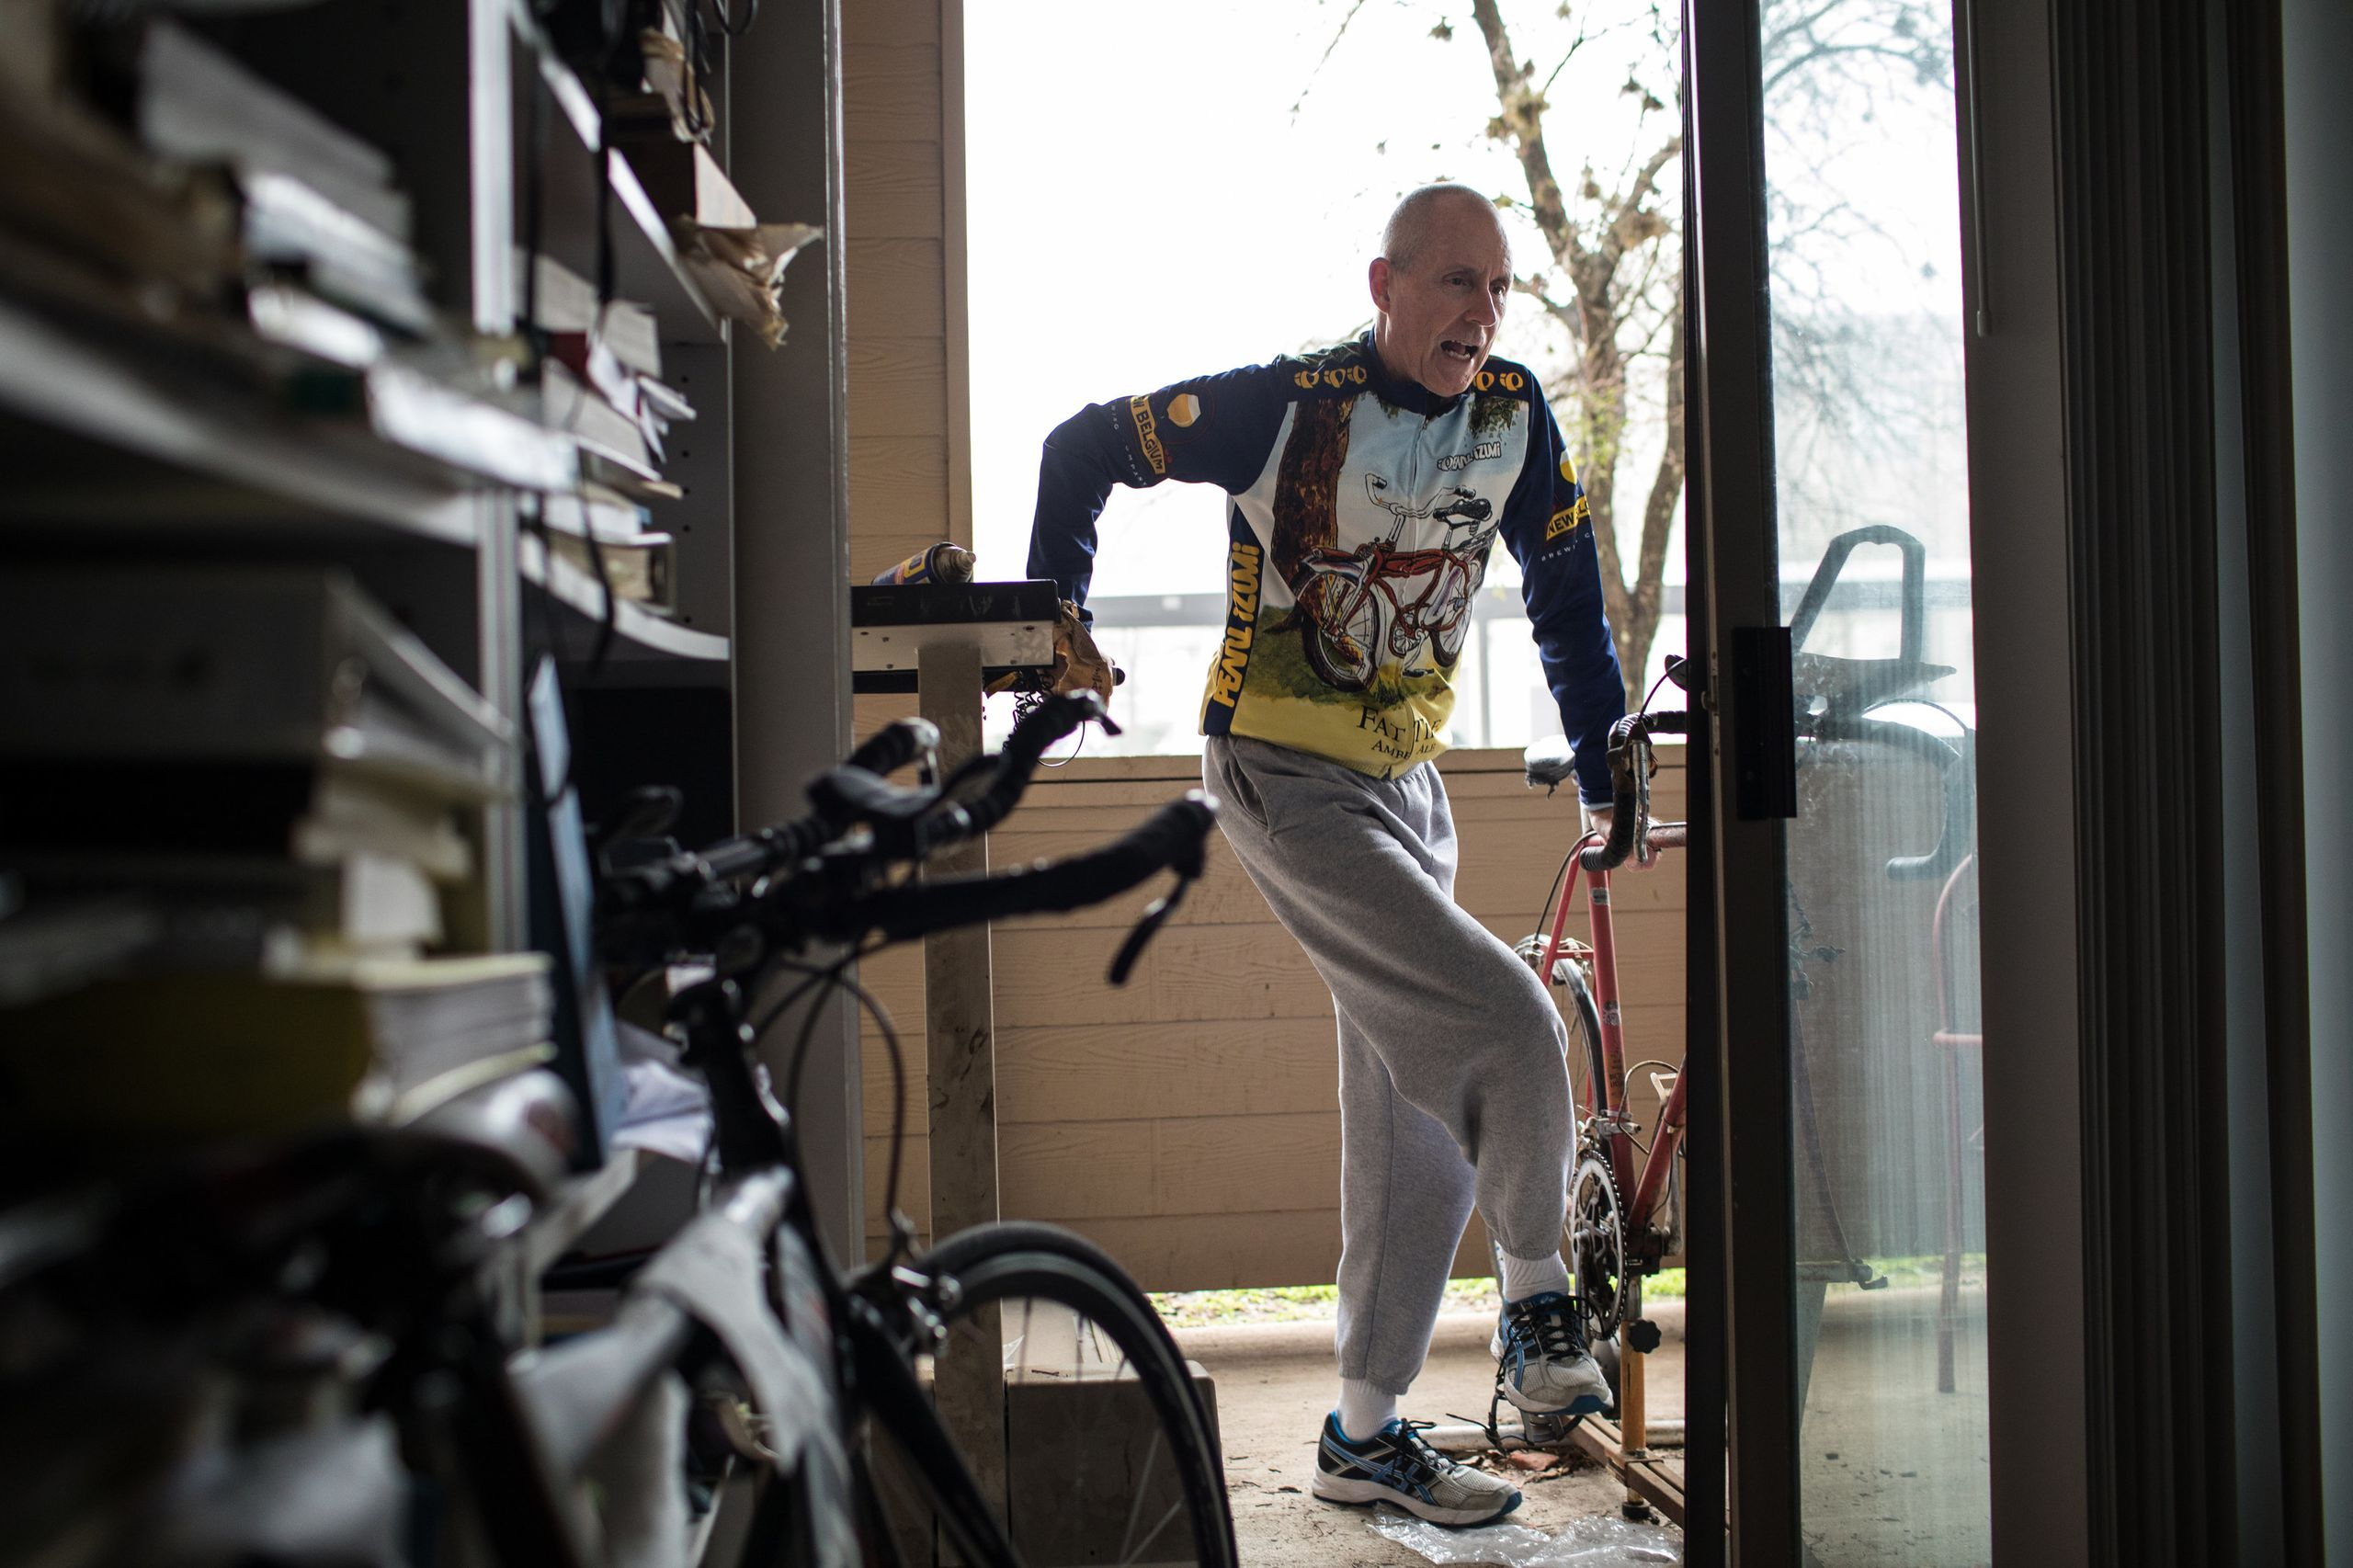 Chuck Yarling steps off his old triathlon bicycle, which he attached to a stationary bike stand on his patio outside his home